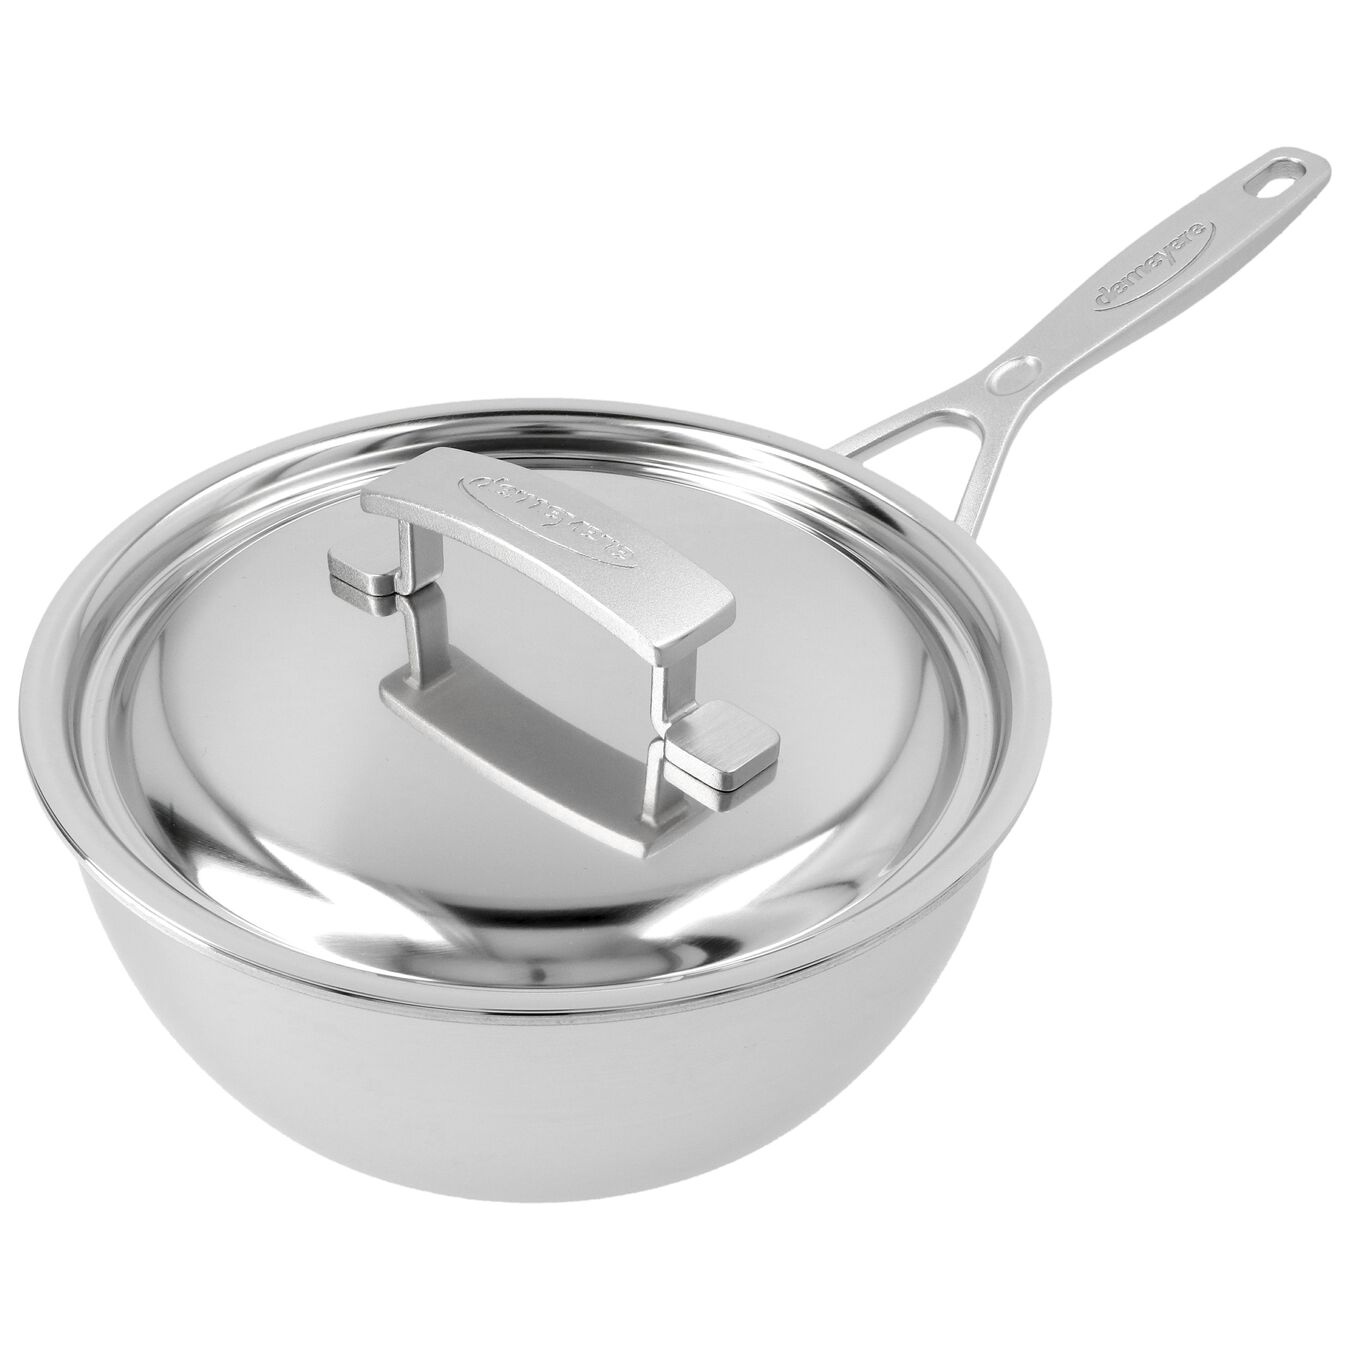 2.25 qt Sauteuse conical, 18/10 Stainless Steel ,,large 5